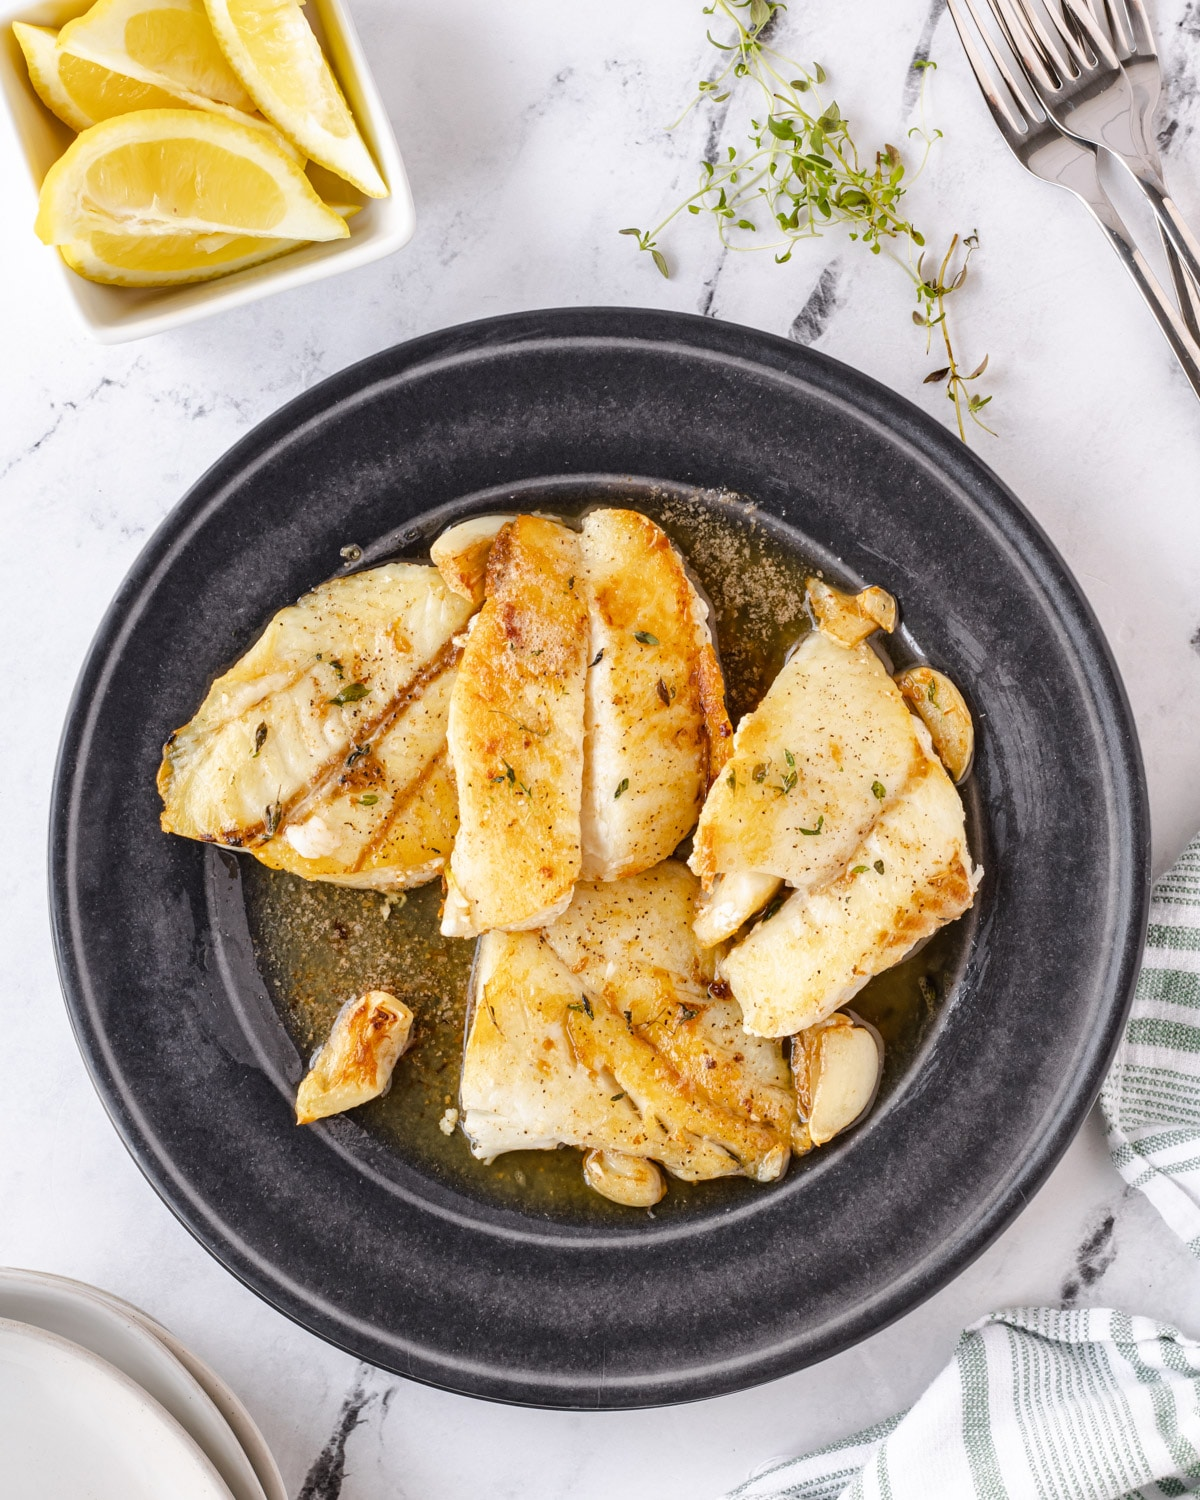 garlic butter-basted fish on a grey plate with sliced lemonds and a few sprigs of thyme above the plate.